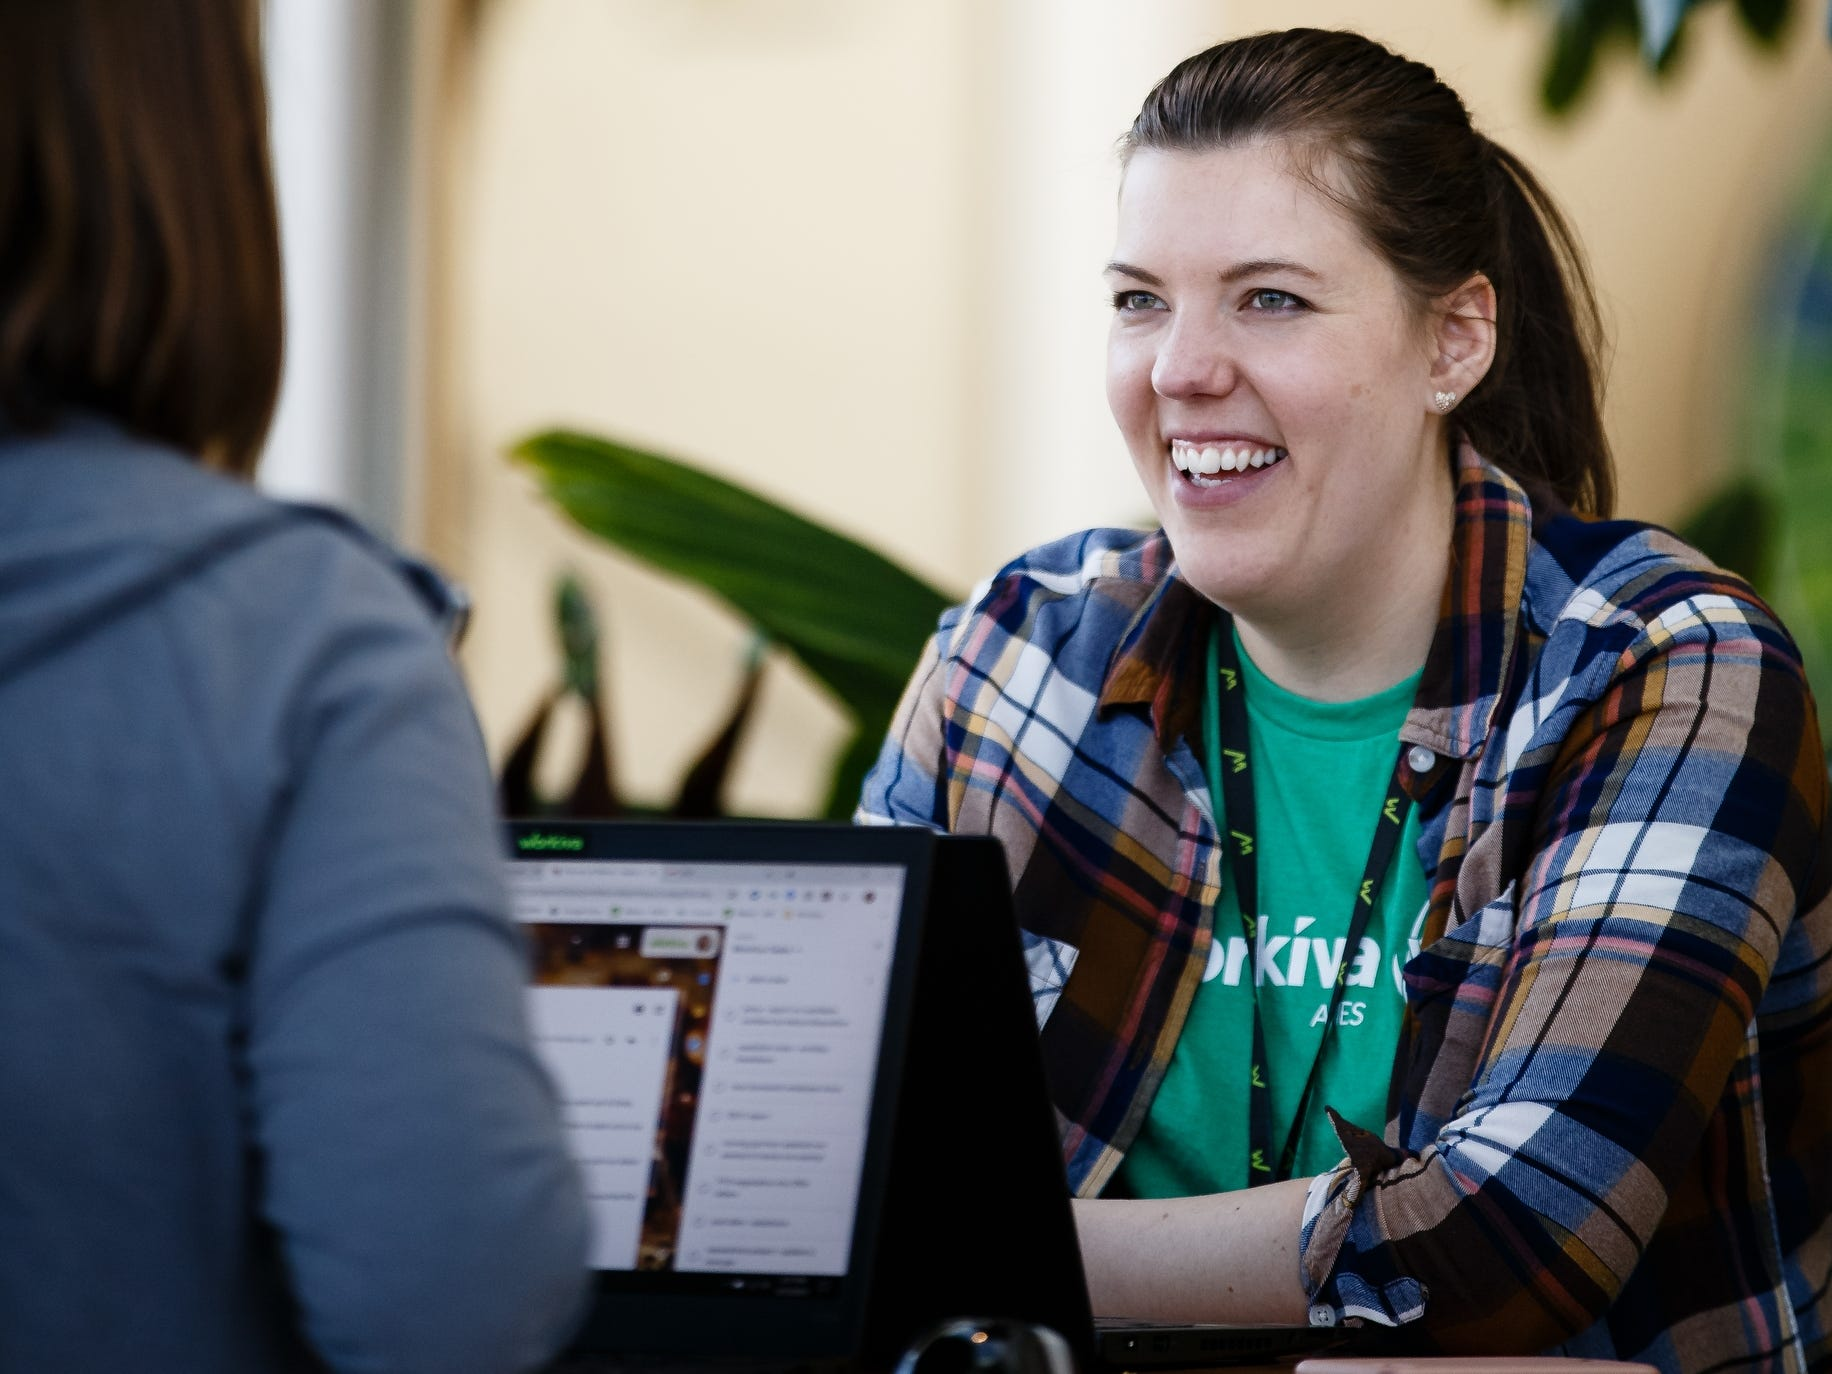 Stephanie Ruzicka, 29 of Ames, works in the atrium of Workiva, a tech company in Ames on Friday, March 15, 2019.